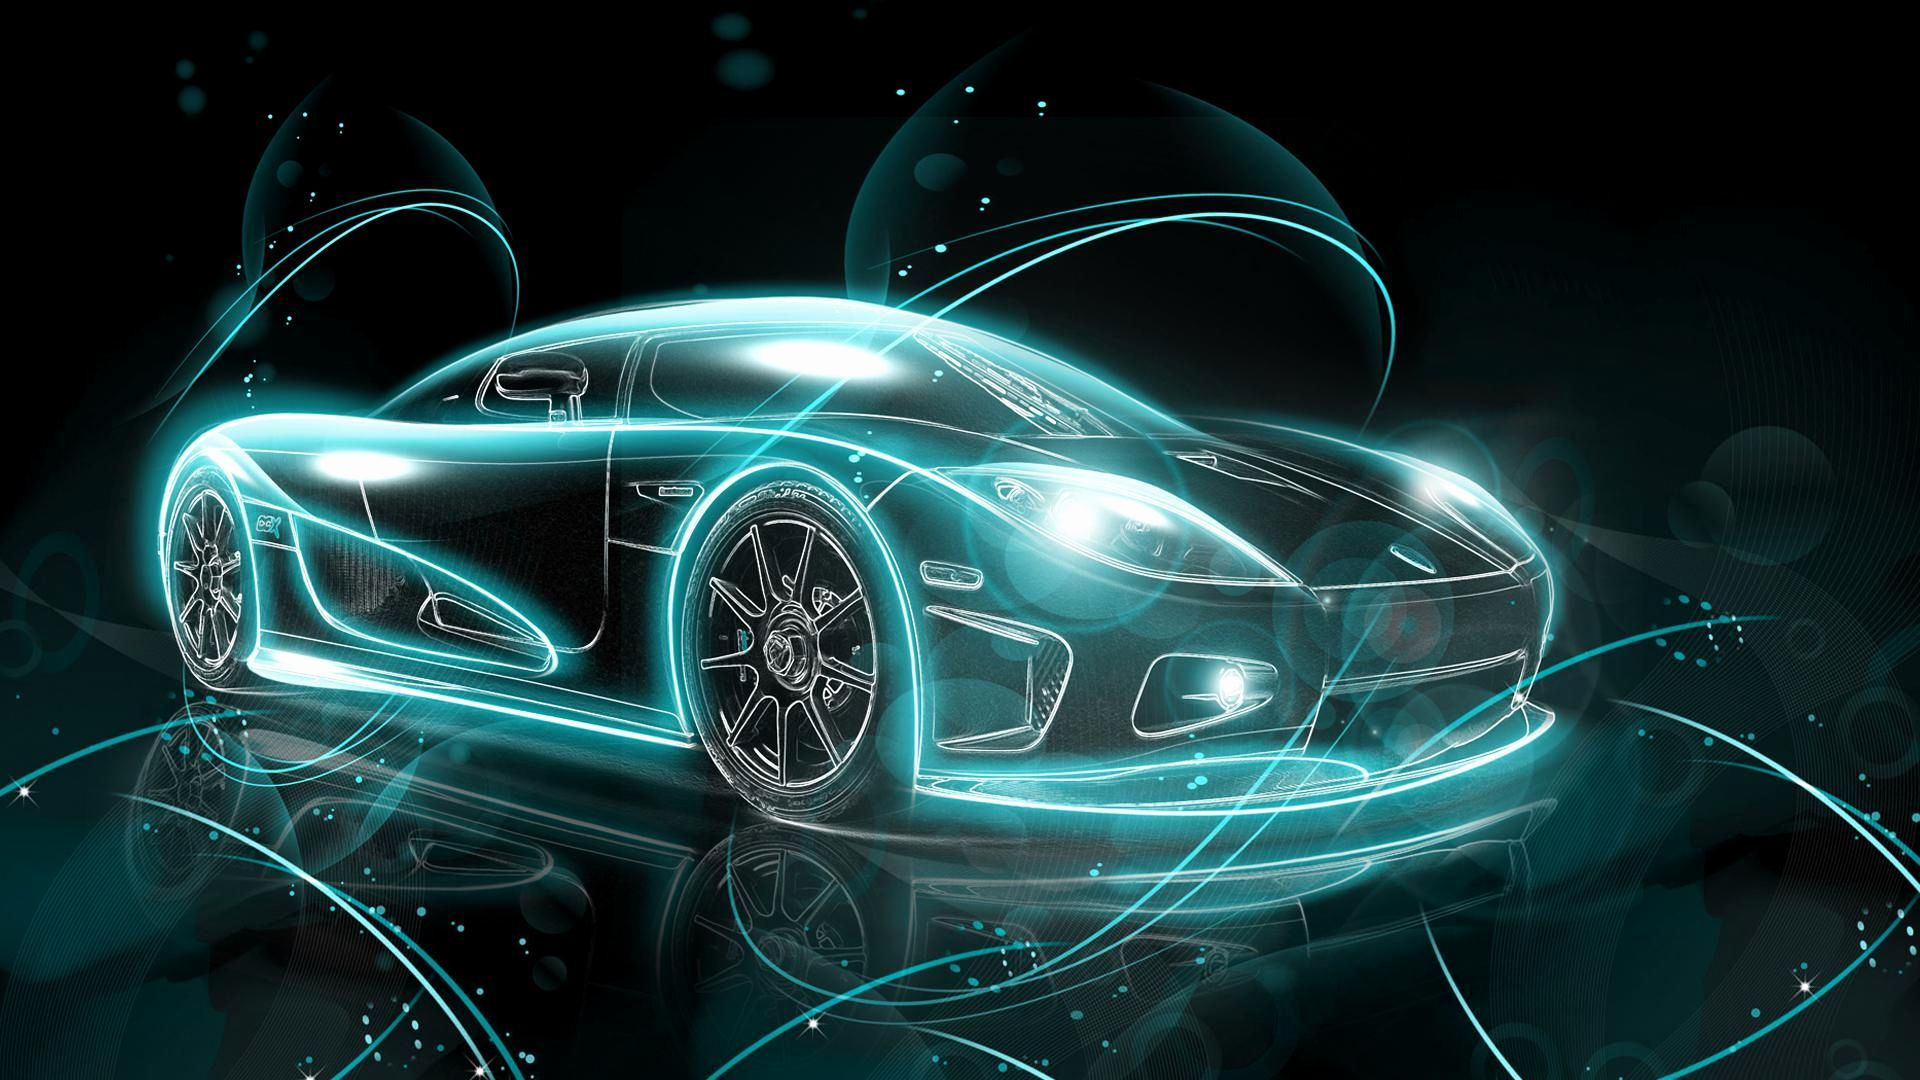 Neon Cool Wallpapers Cars